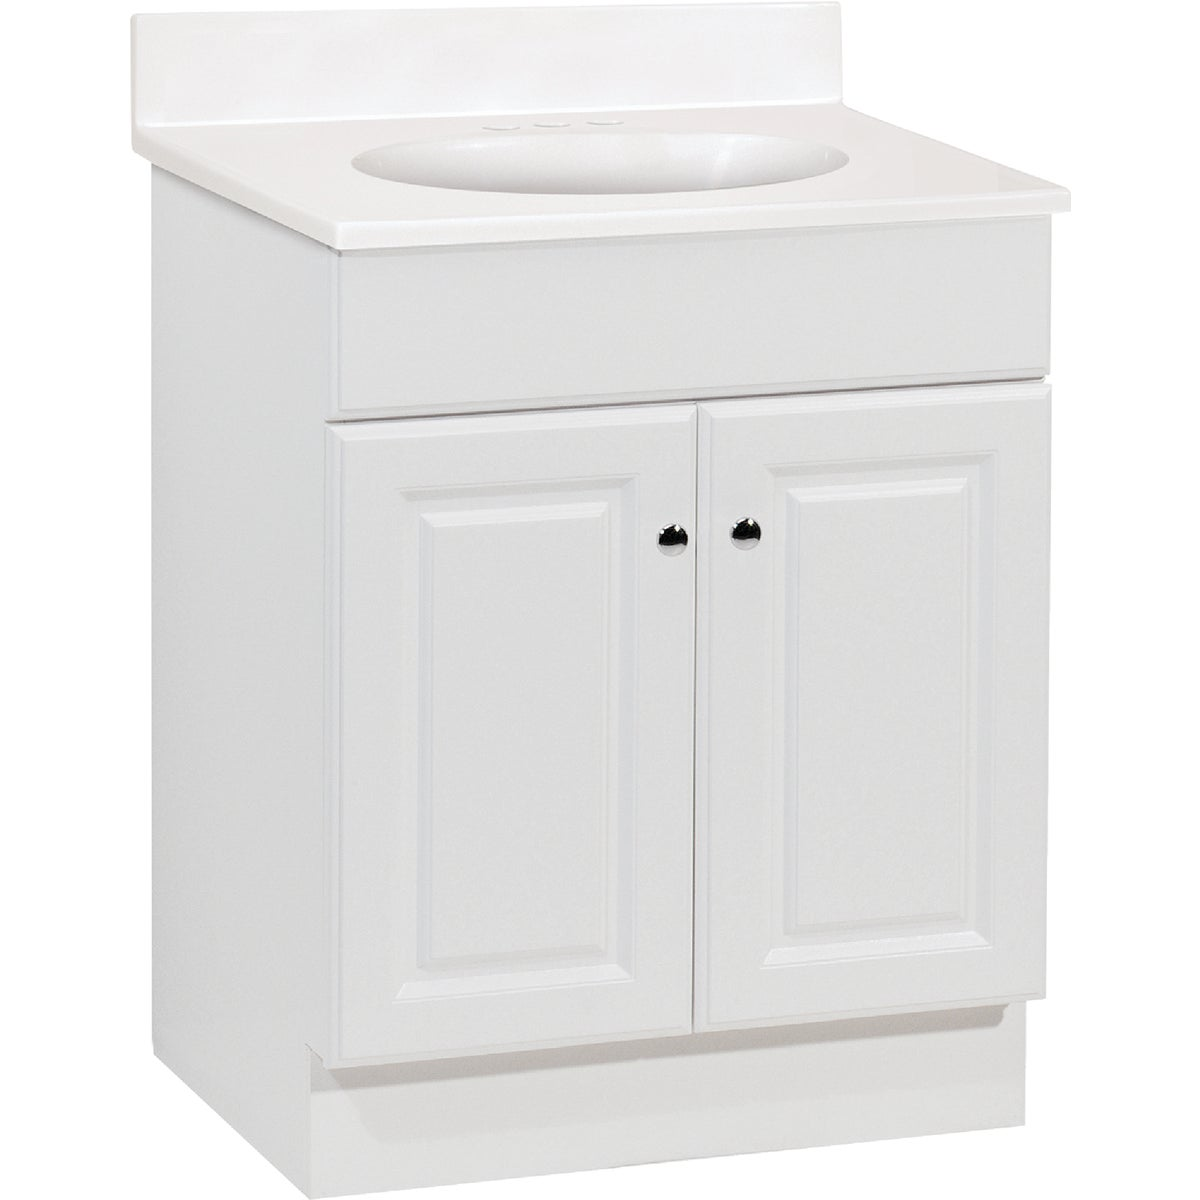 """RCHMD 24"""" WHT COMBO VAN - C14124A by RSI Home Products"""